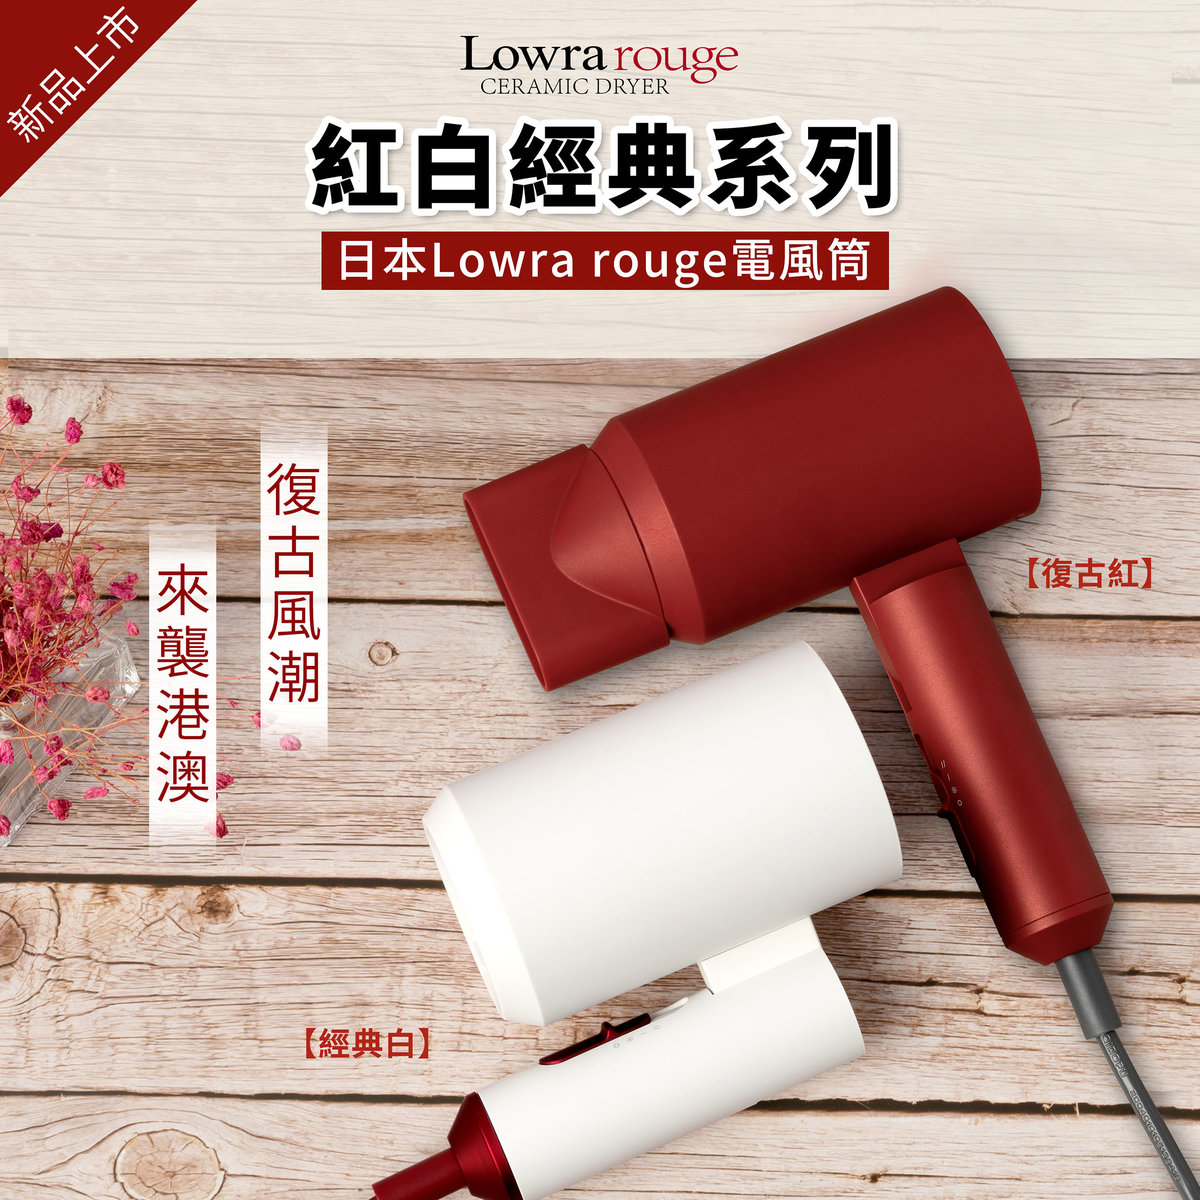 Low Radiation Negative Ion Hair Dryer - CL202 (Red)